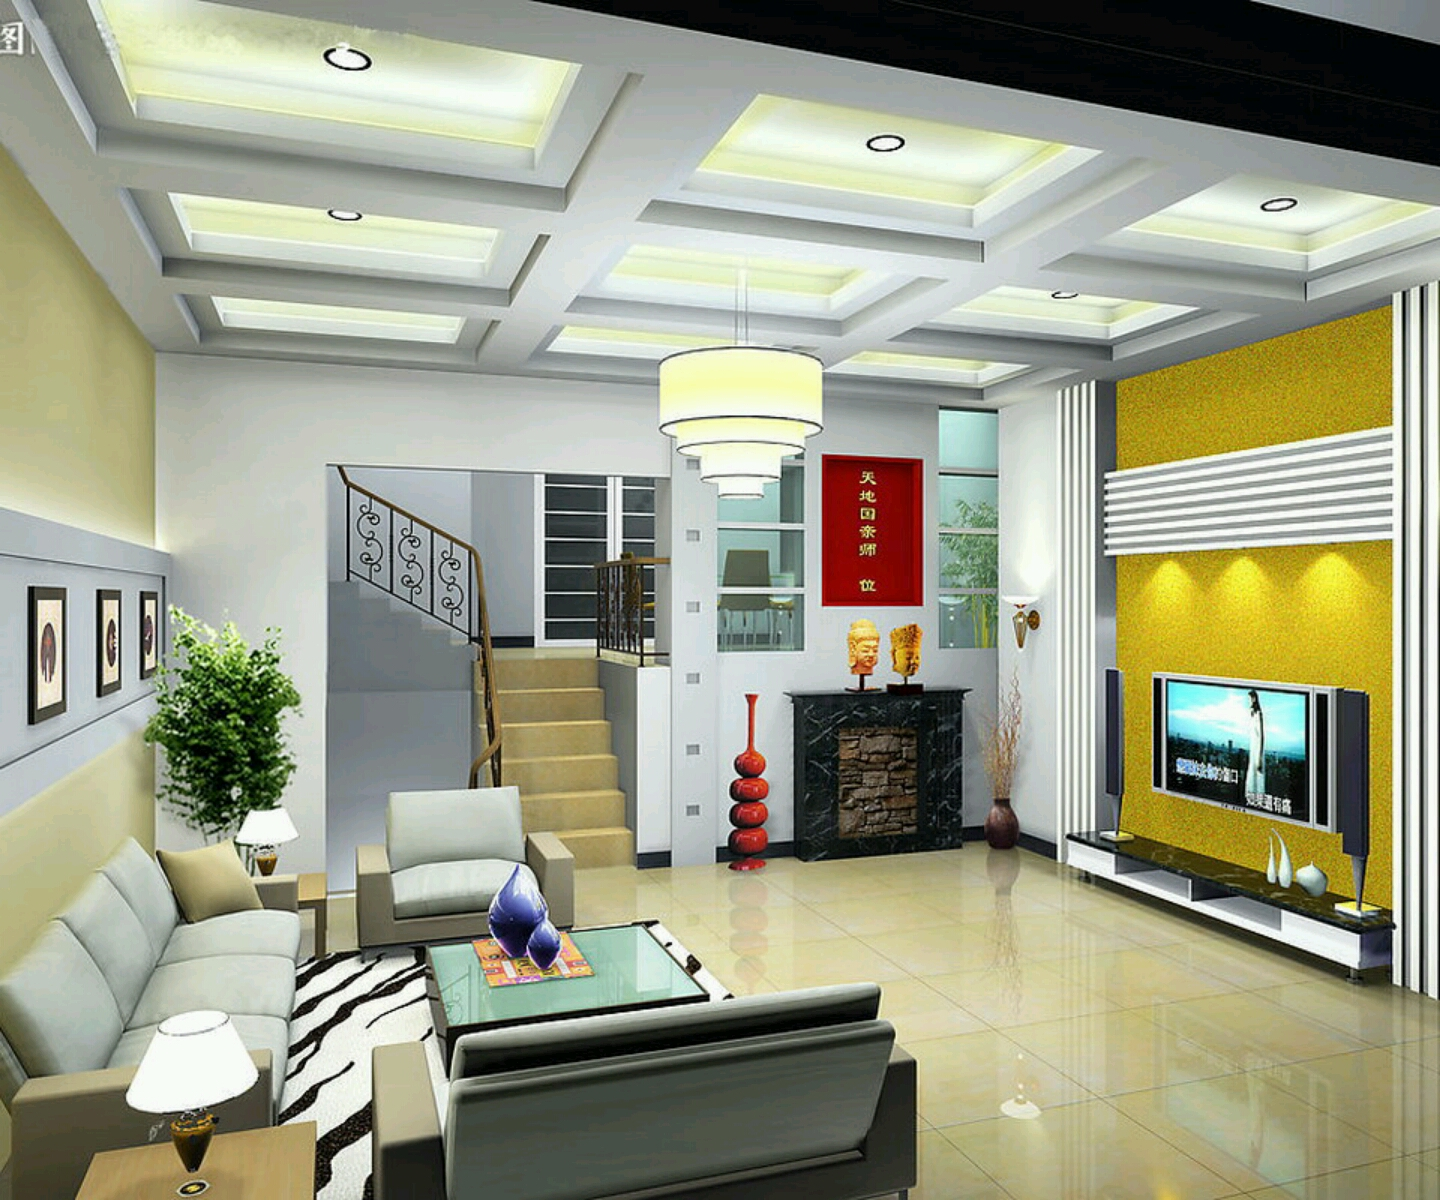 Rumah rumah minimalis ultra modern living rooms interior for Design rumah mimimalis modern